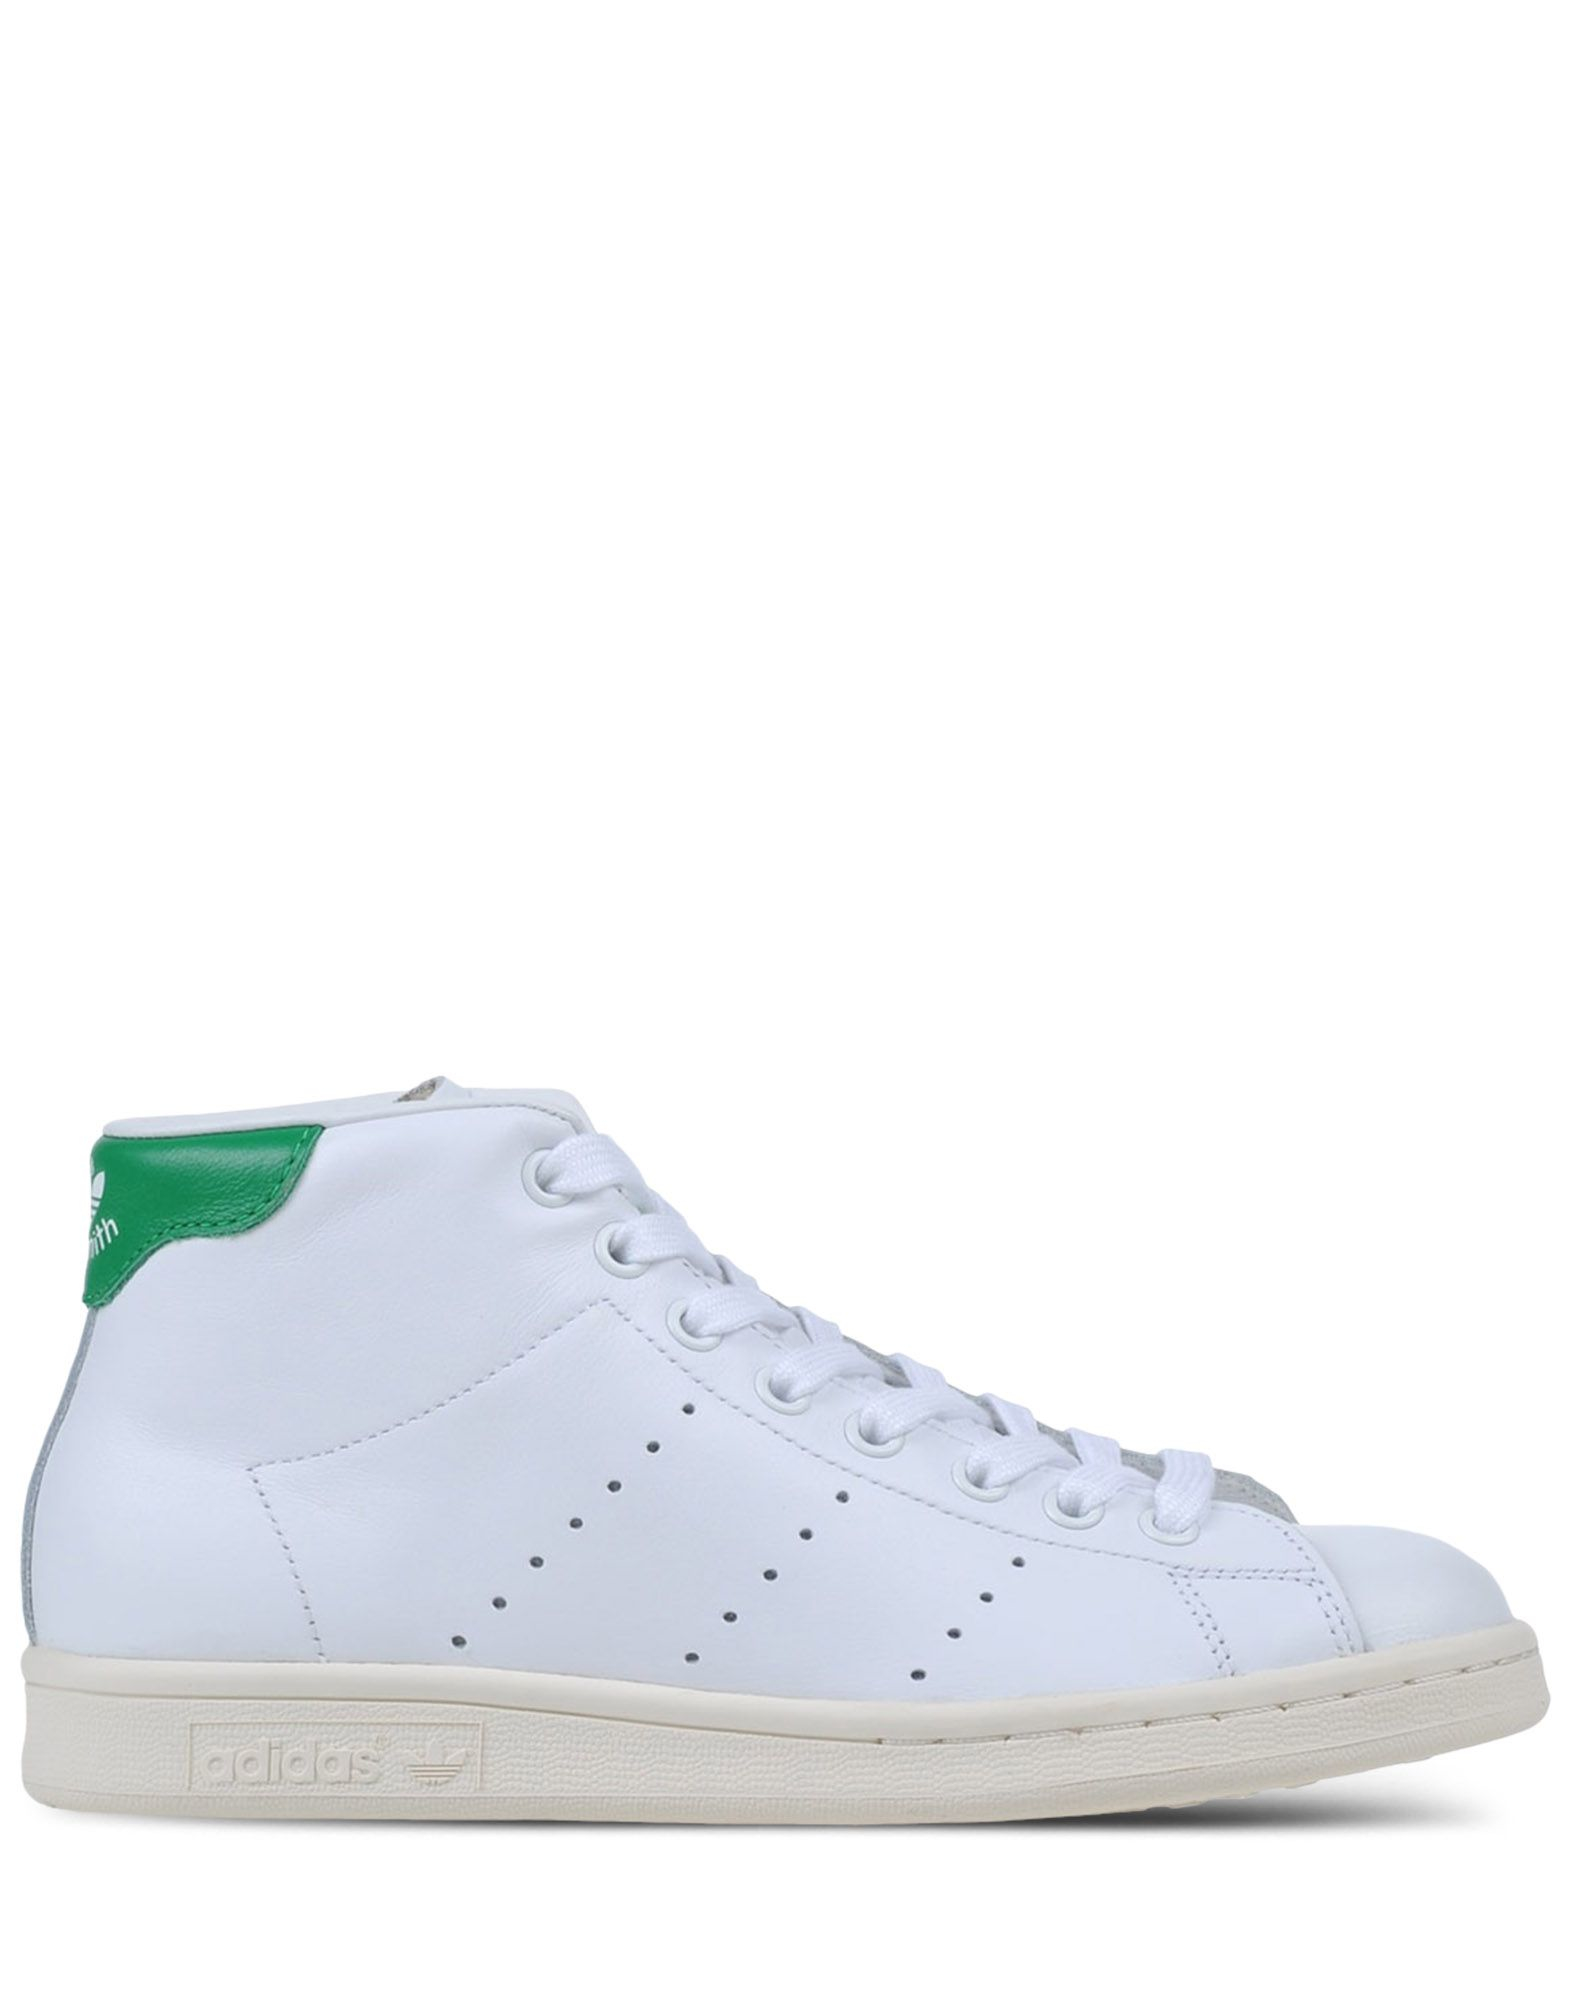 Adidas Originals Originals Top Ten Low Sneaker In Black: Adidas Originals High-top Sneakers In White